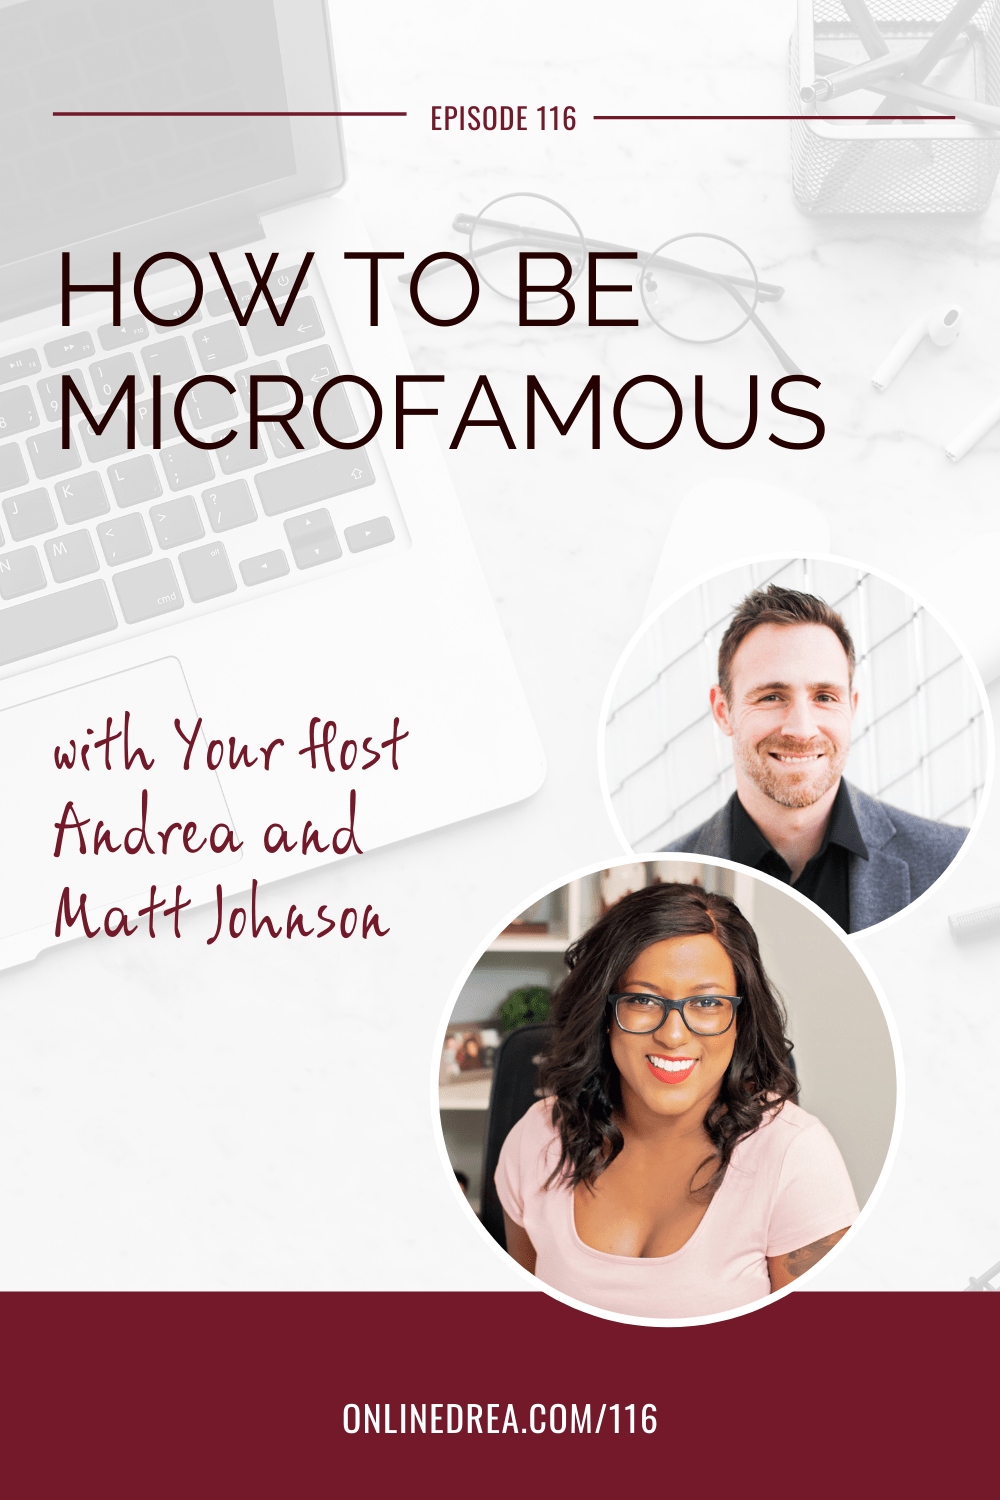 How to be MicroFamous with Matt Johnson